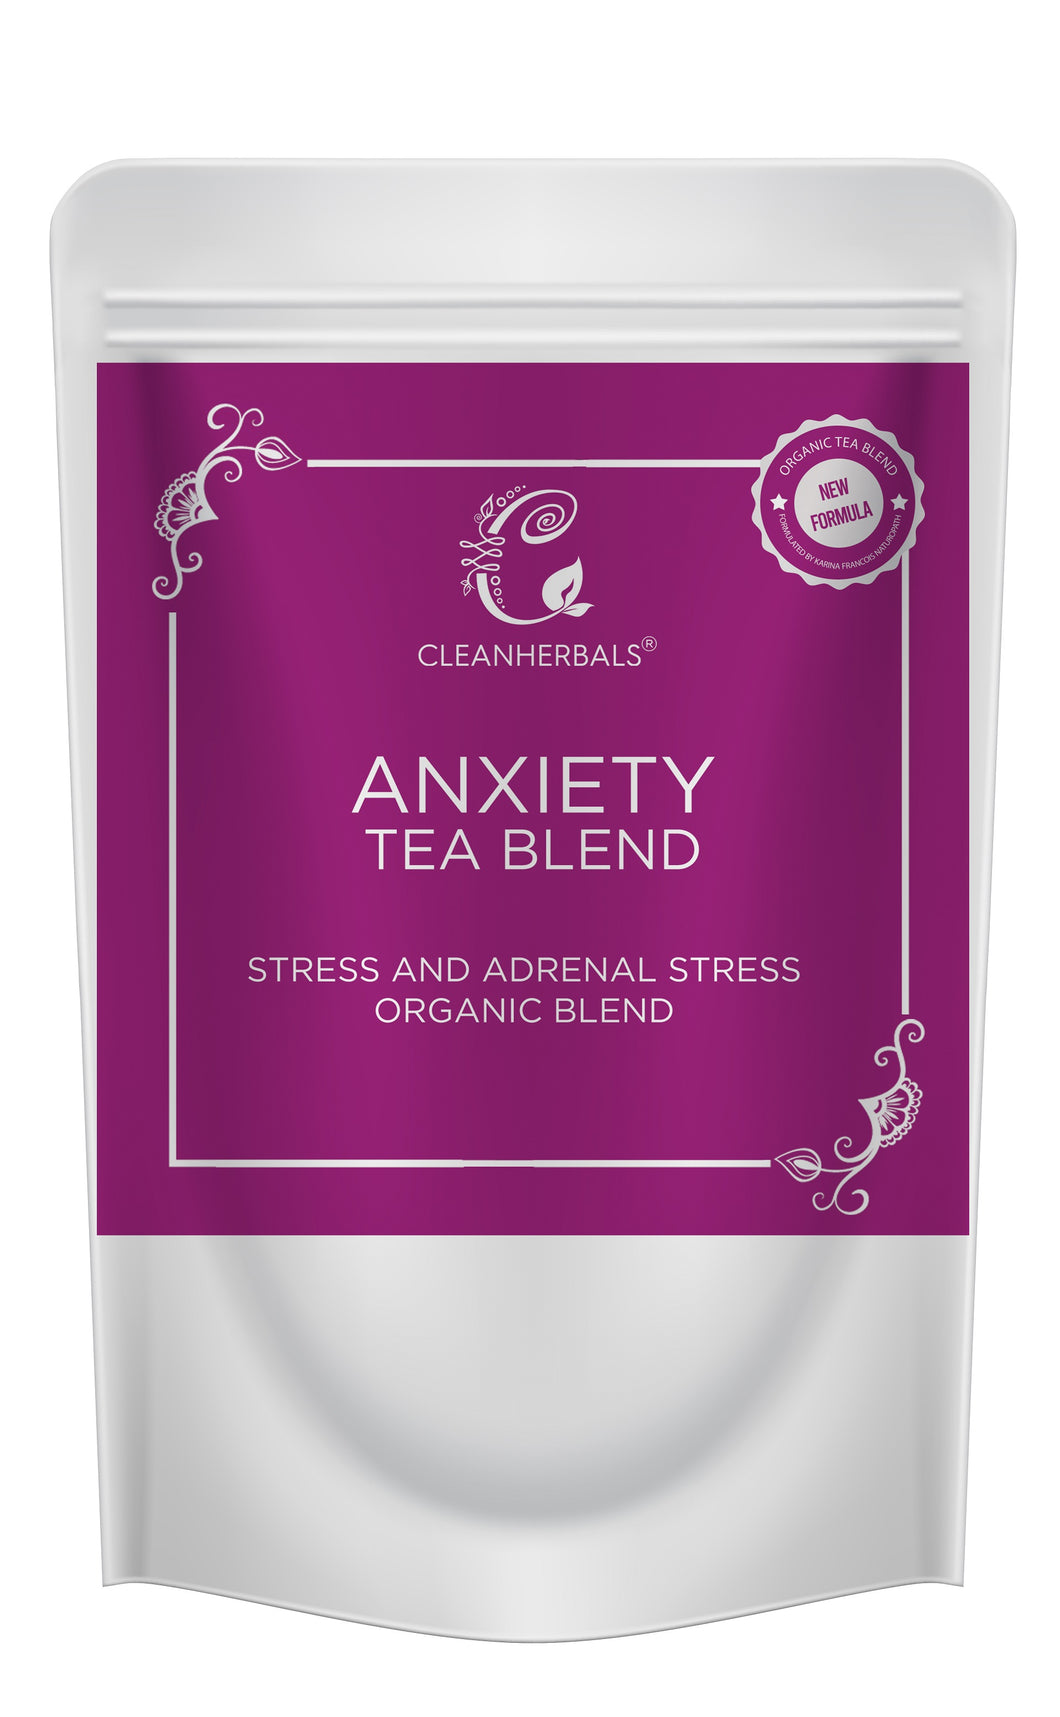 28 gm Anxiety Blend-Adrenal Stress, Anxiety and Stress & Thermos Pack